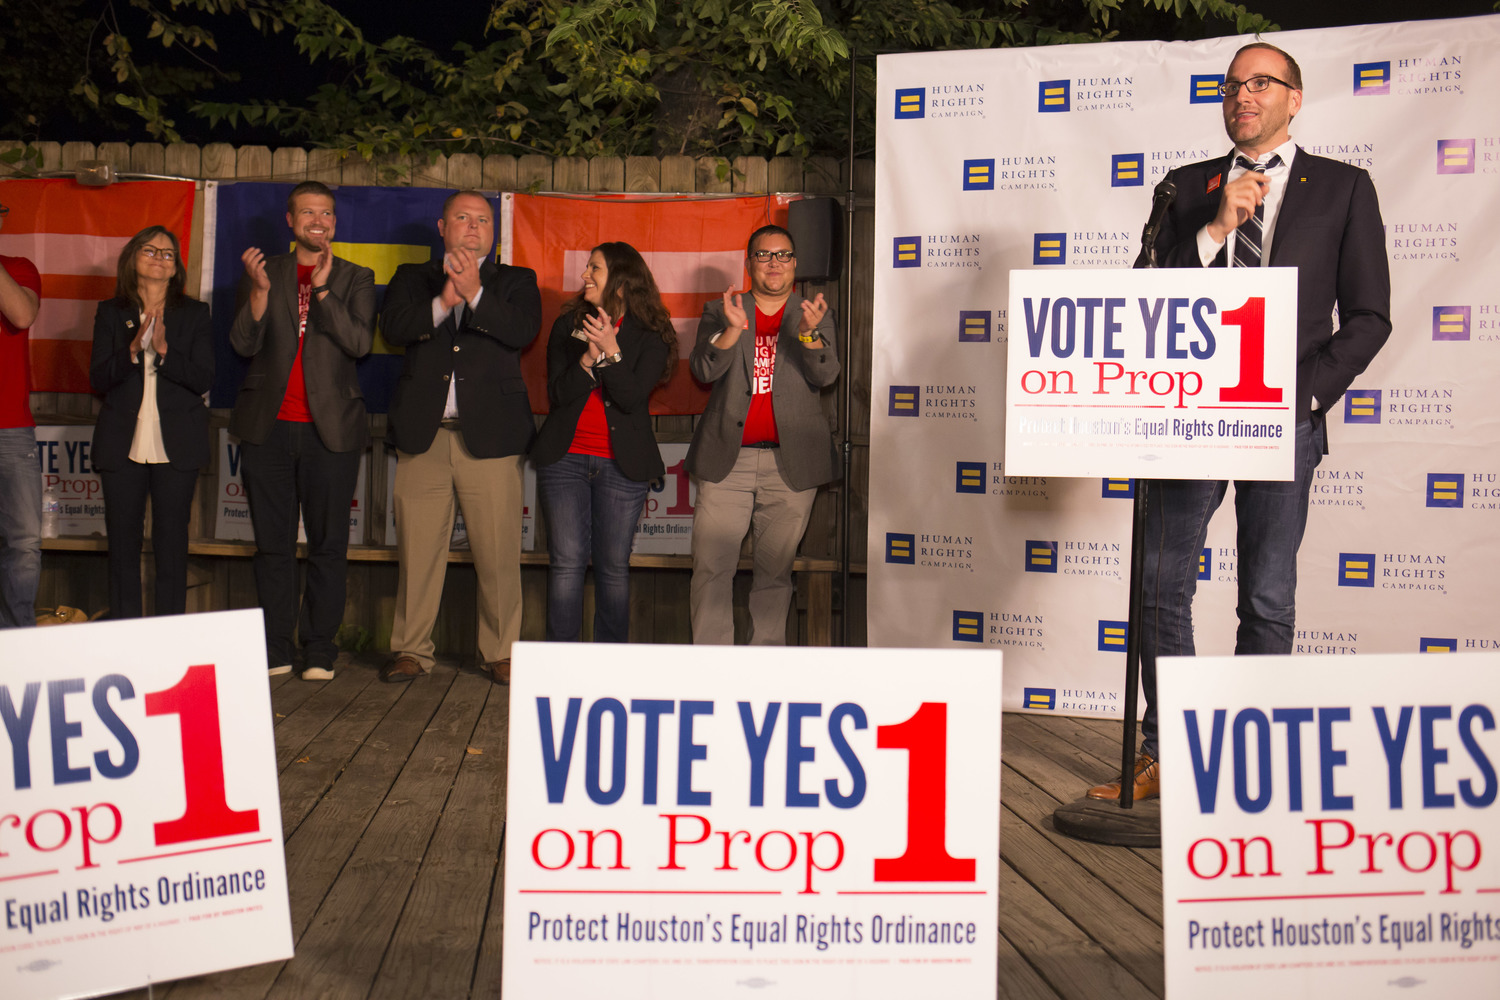 Human Rights Campaign President Chad Griffin speaks to staff and volunteers in Houston Wednesday Oct. 28, 2015, who are working to get out the vote for Prop 1 – Houston's Equal Rights Ordinance. (Michael Stravato/AP Images for Human Rights Campaign)